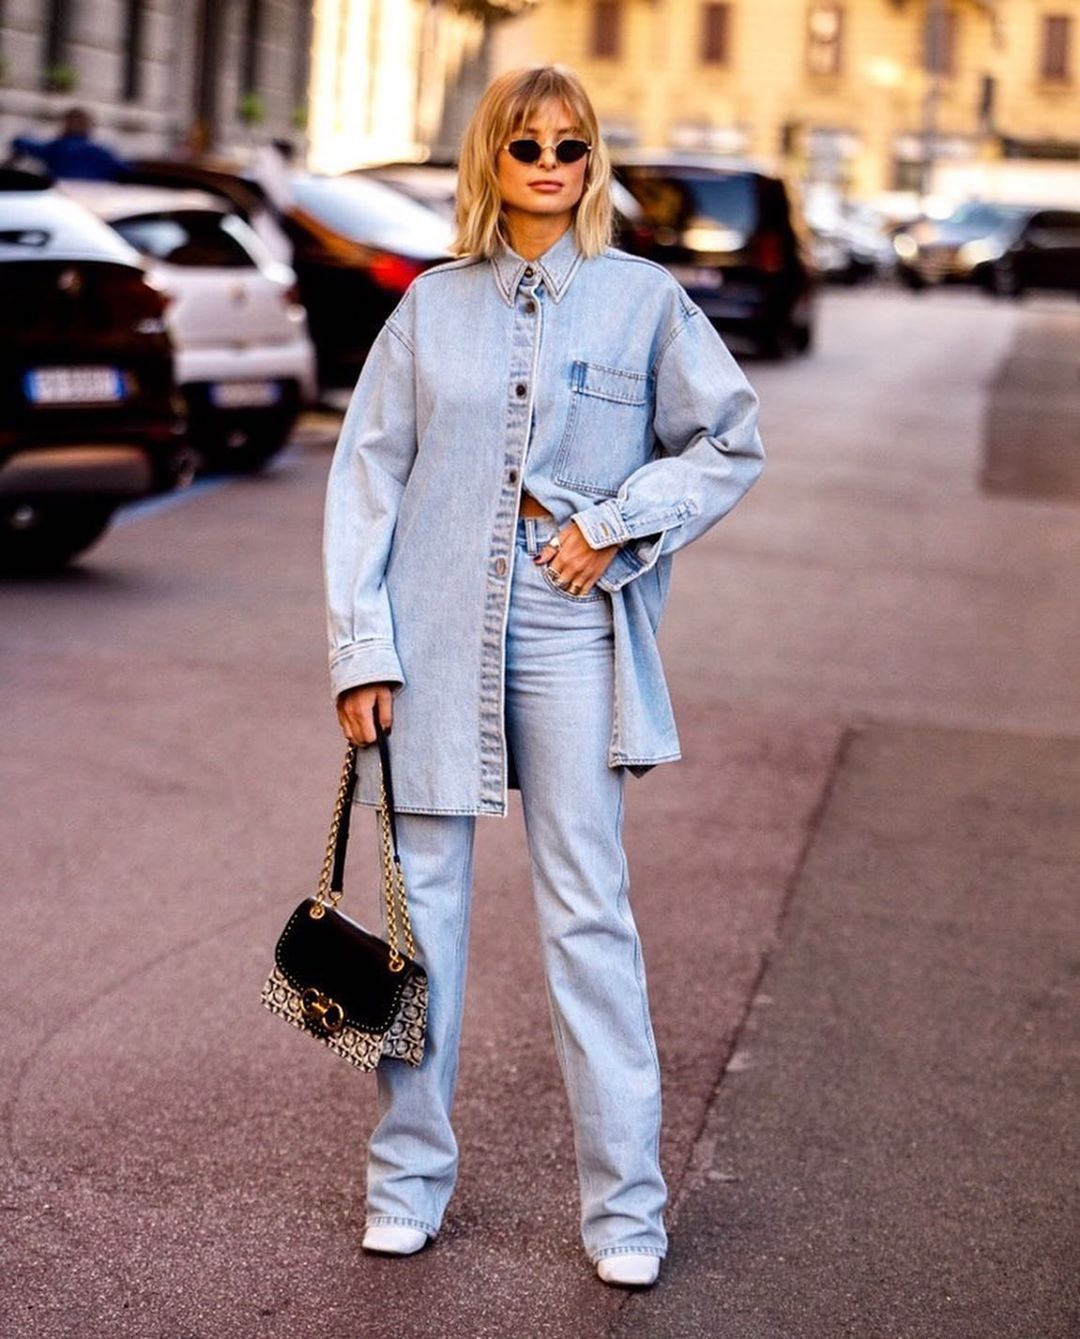 xenia-adonts-oversized-denim-shirt-outfit